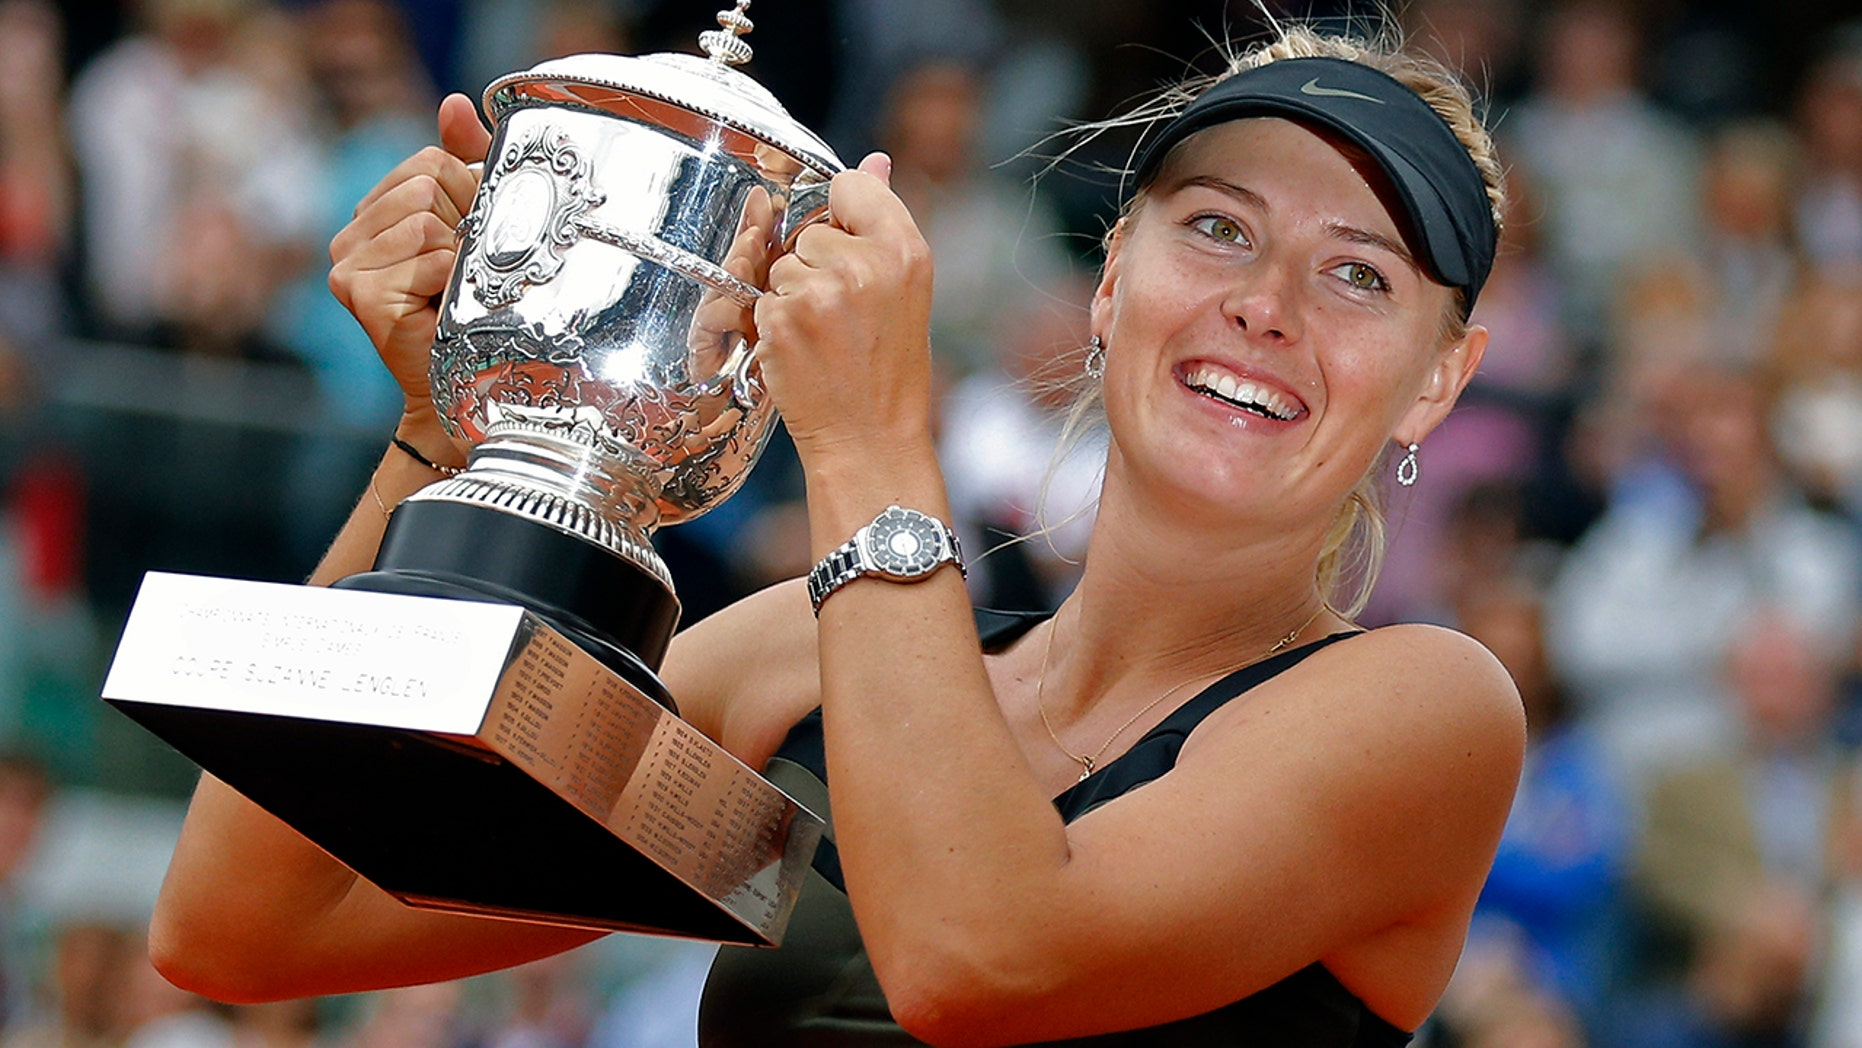 Maria Sharapova of Russia holds the trophy after winning the women's final match against Sara Errani of Italy at the French Open tennis tournament in Roland Garros stadium in Paris. (AP Photo/Michel Euler, File)